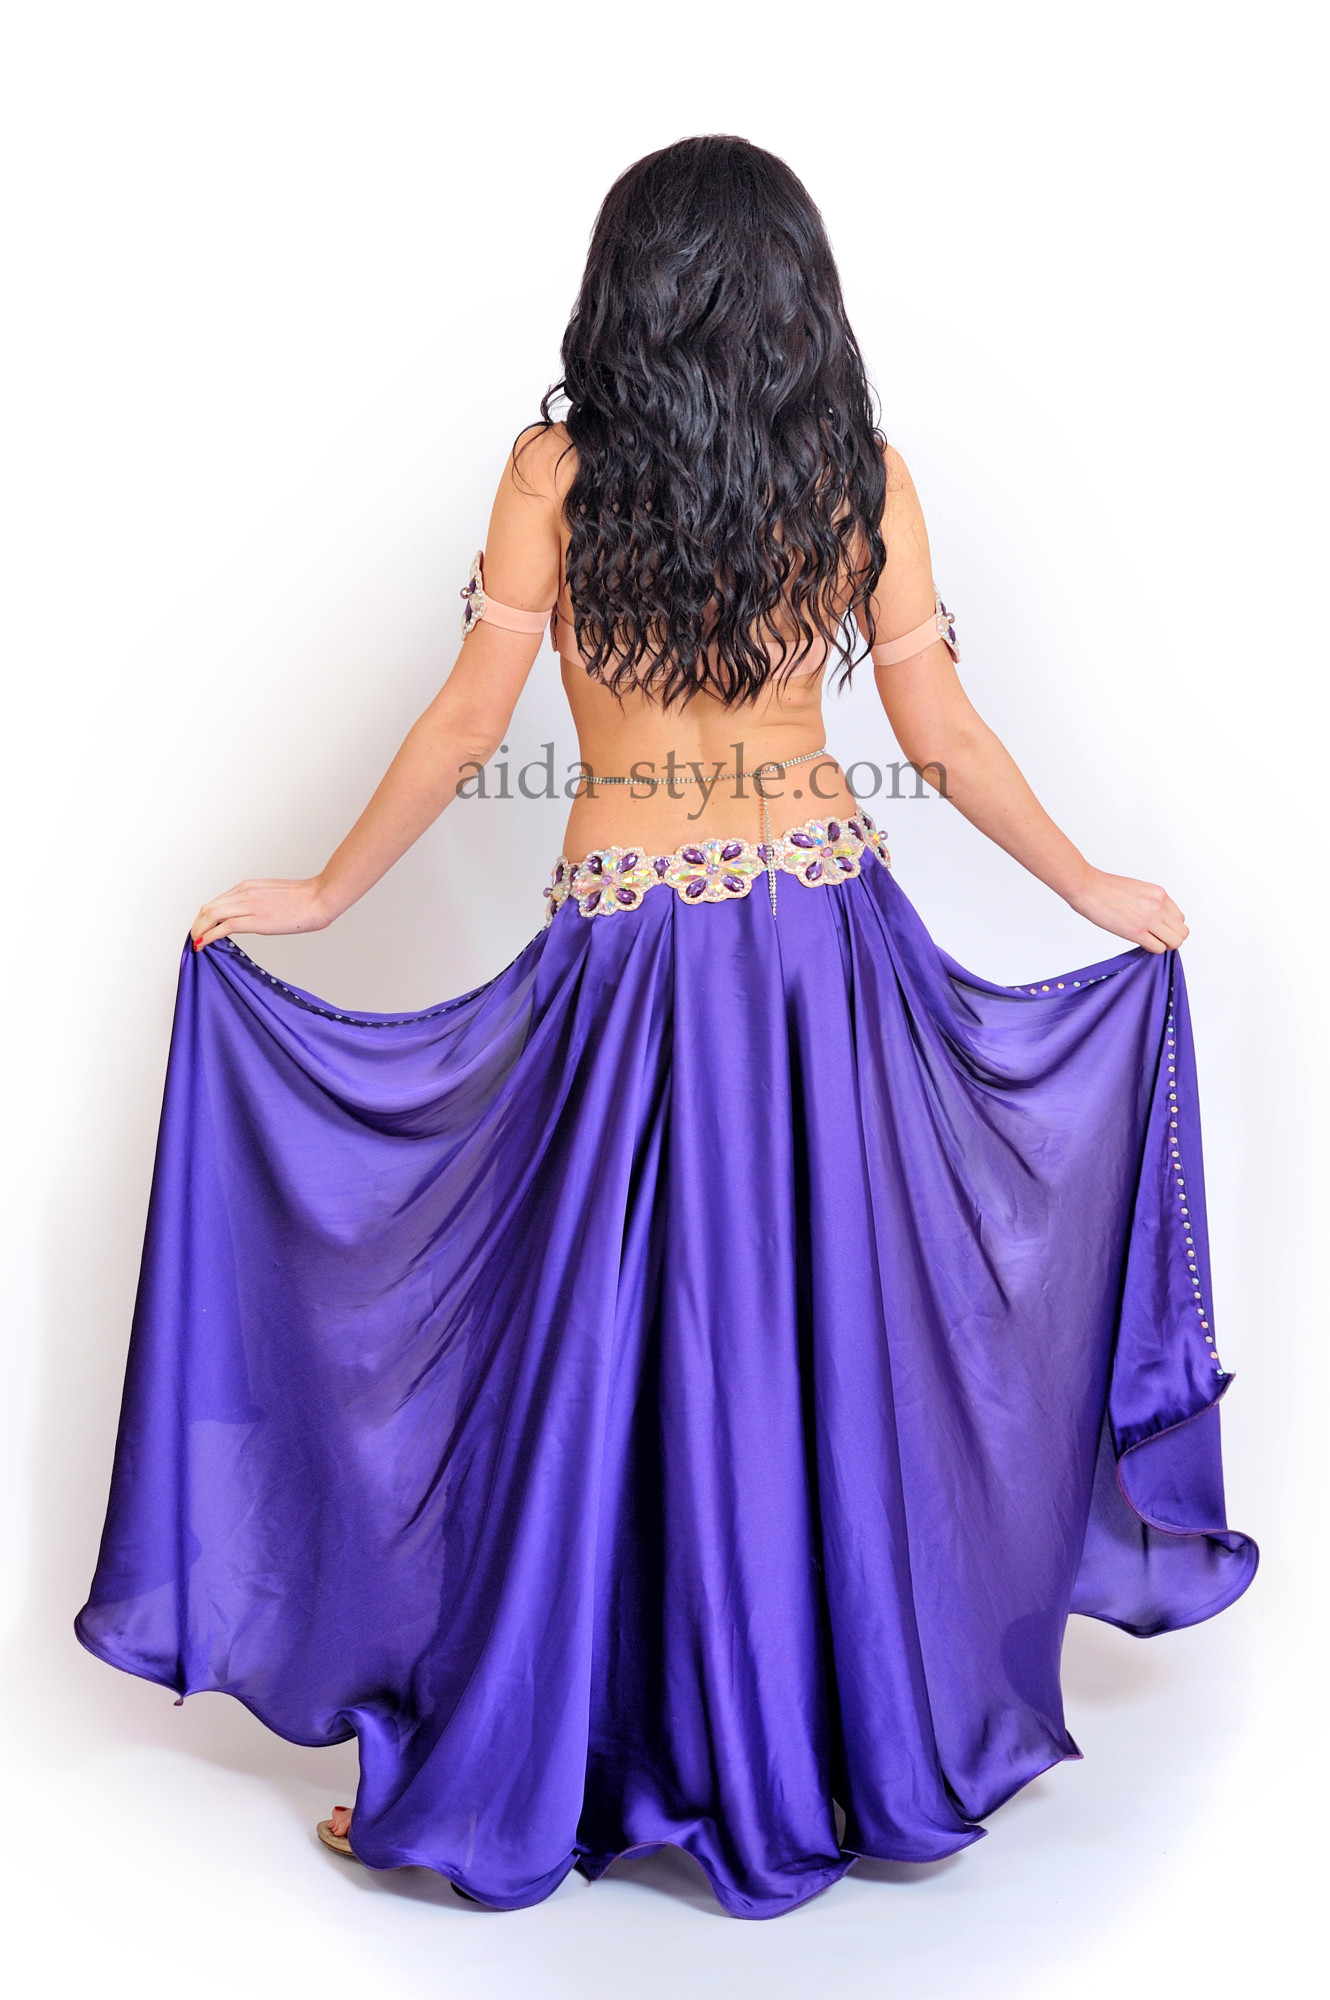 Professional belly dance costume in bright blue color with cut on both sides of the skirt and blue stones on bra and belt